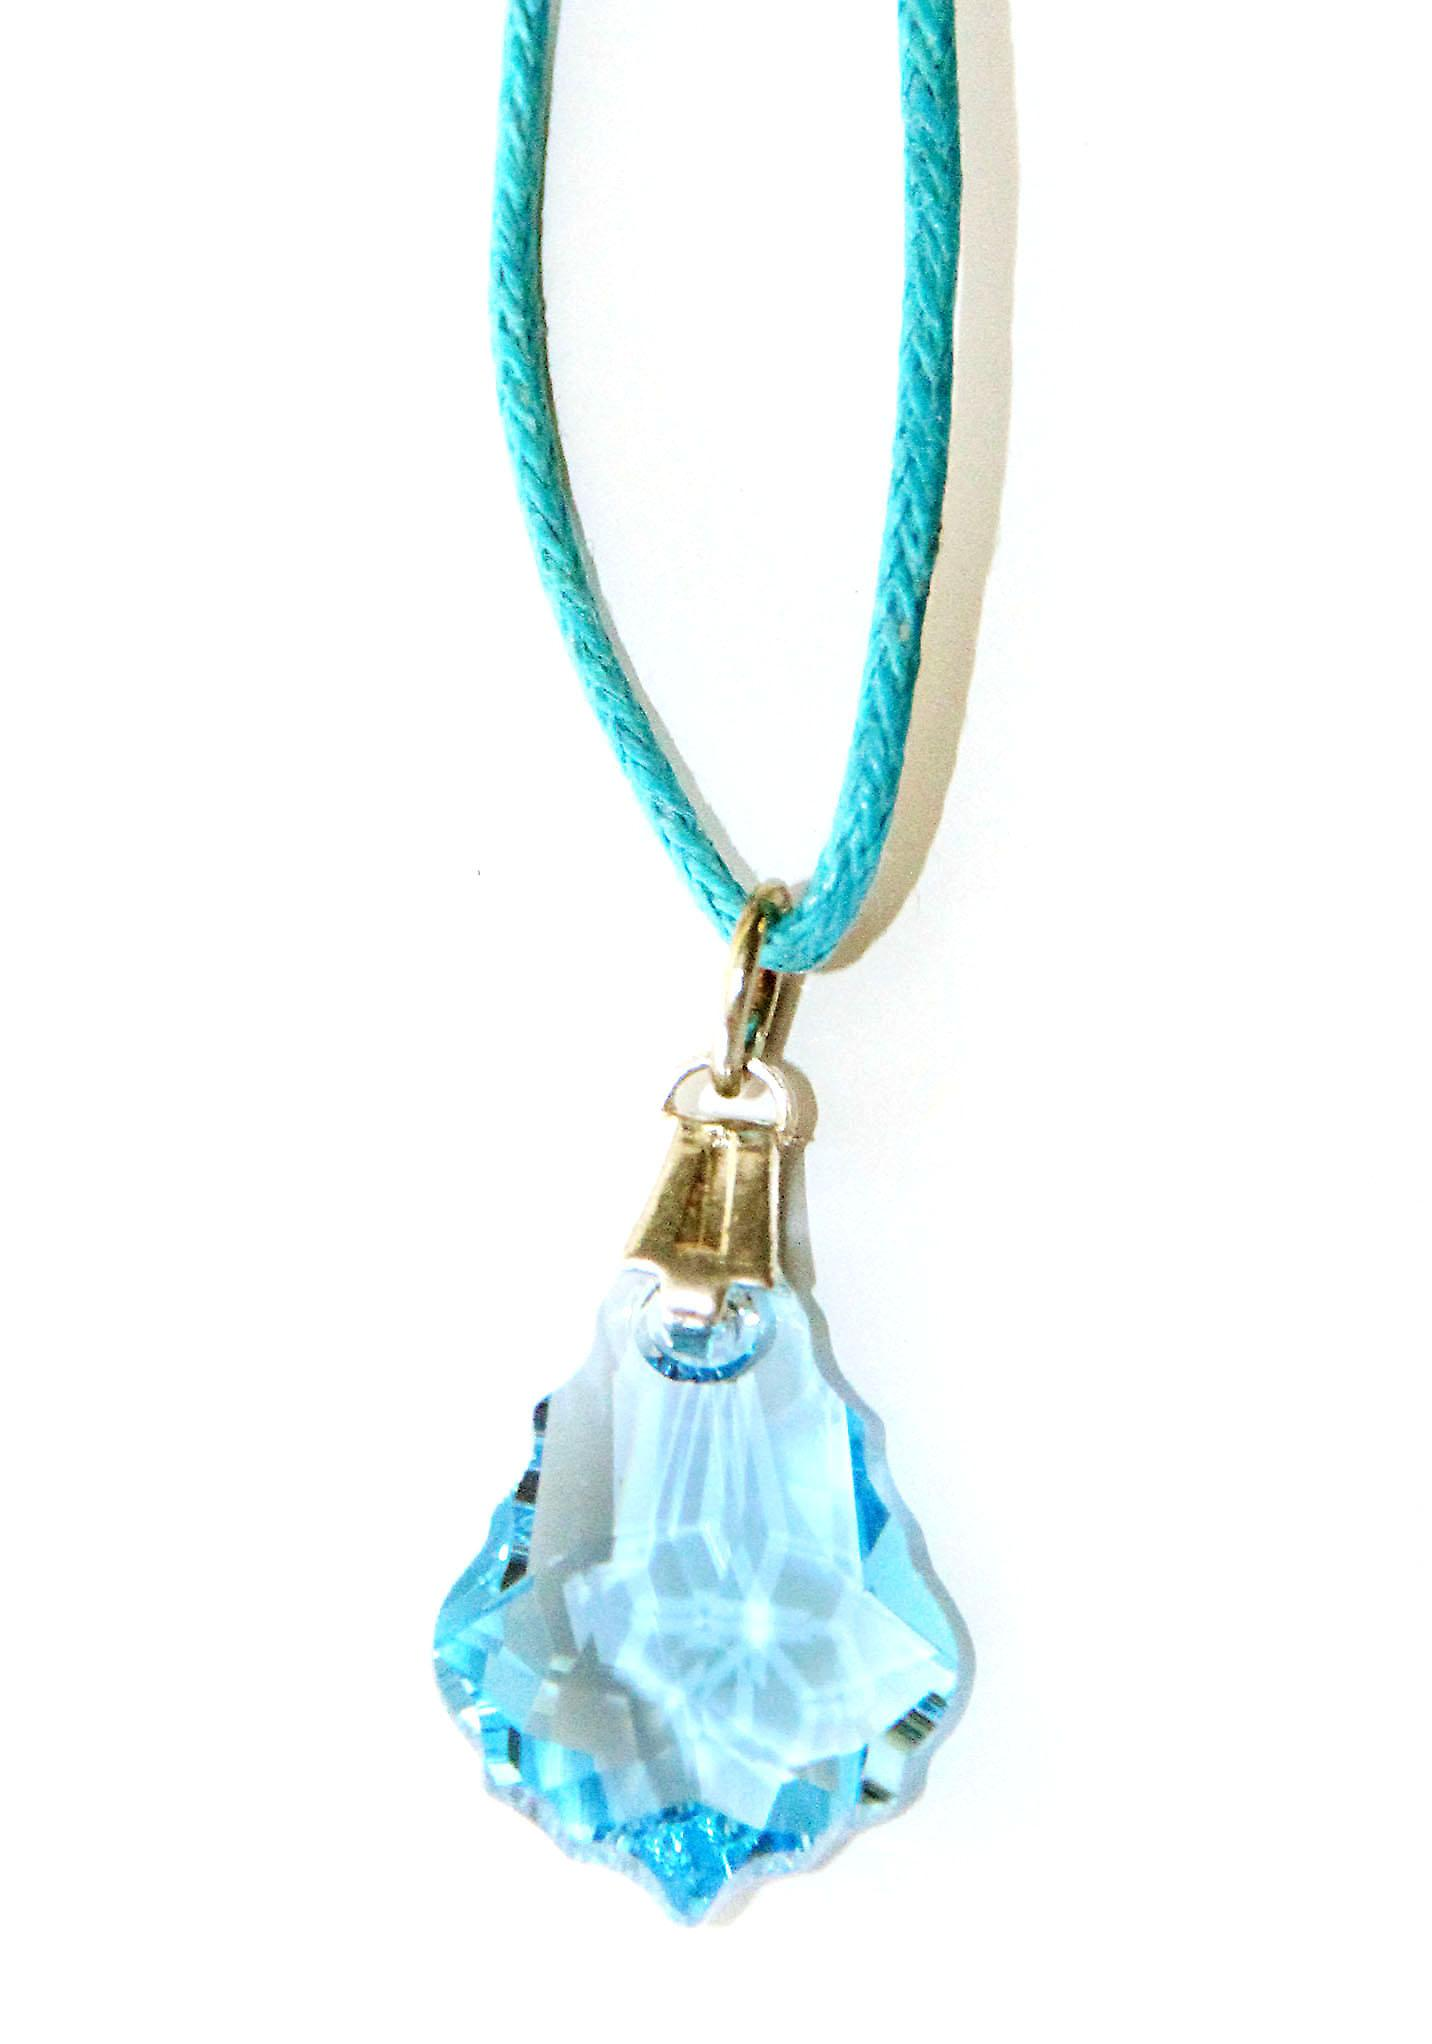 Waooh - Jewelry - Swarovski / blue teardrop pendant and waxed cord - Small